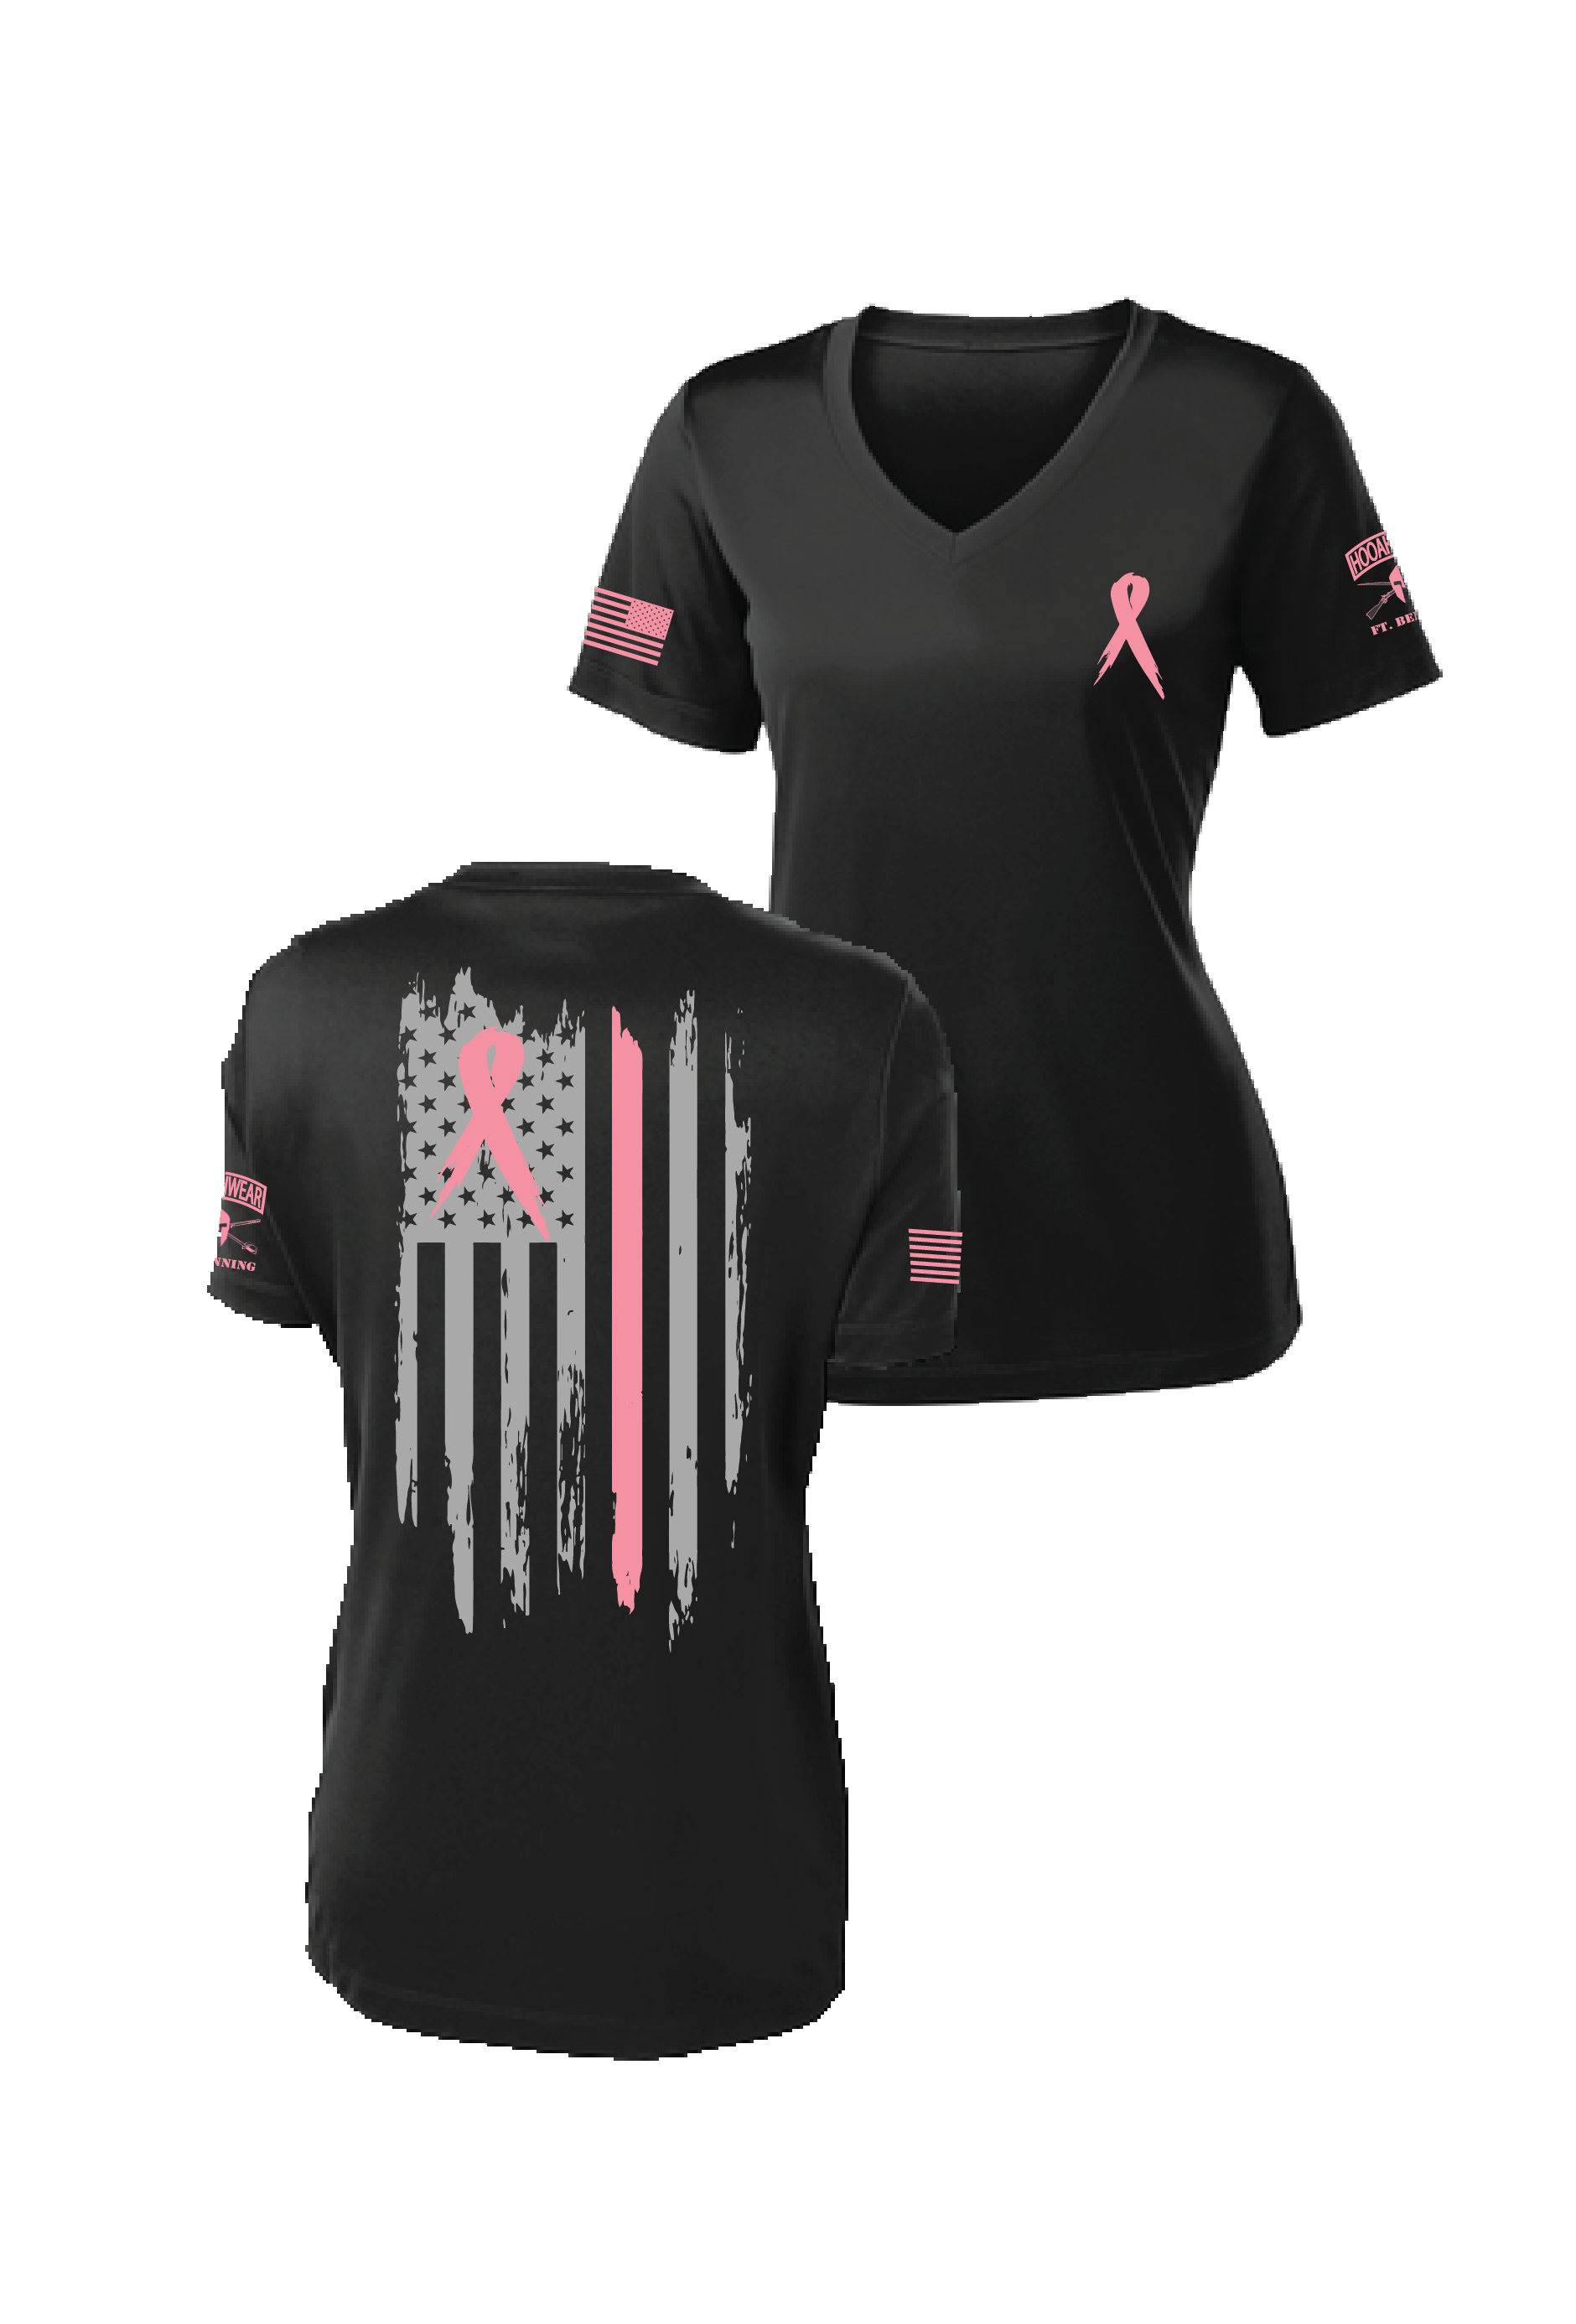 Breast Cancer Awareness Ribbon V-Neck Drifit